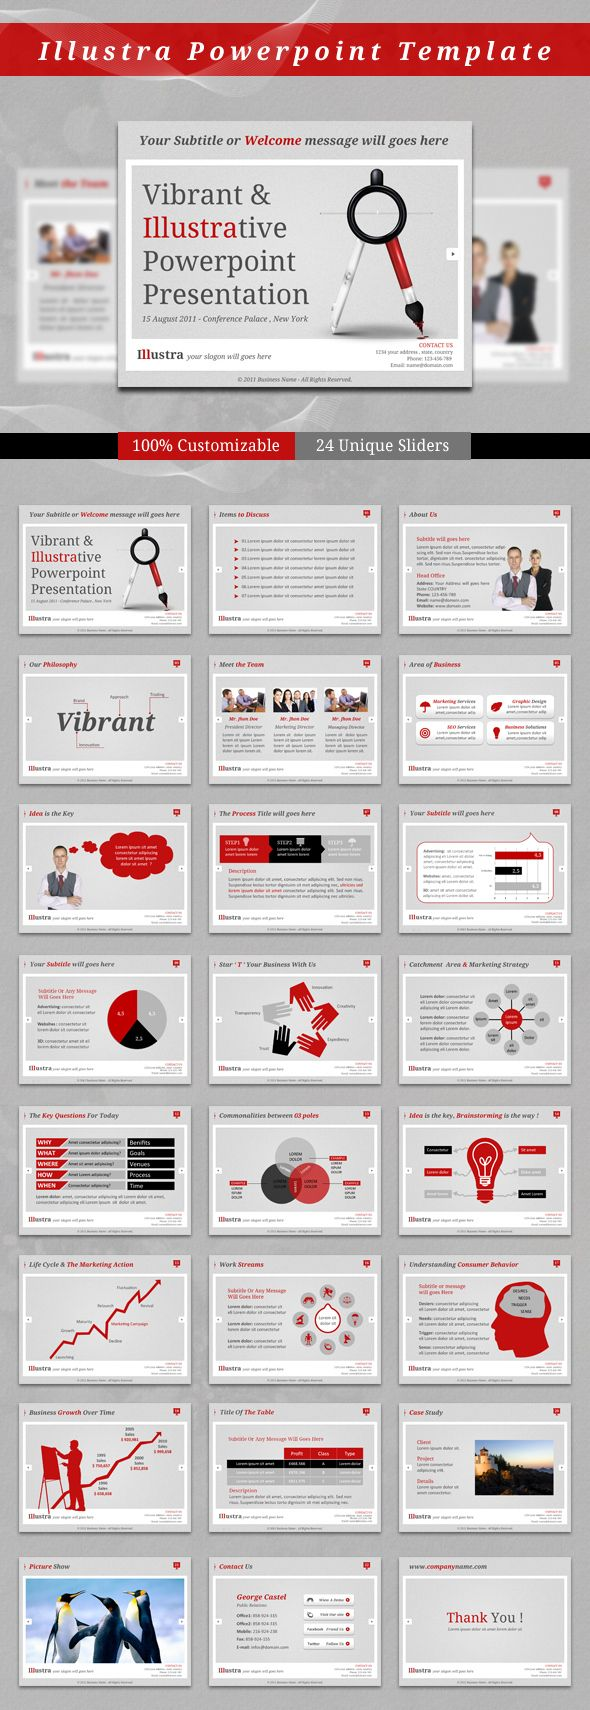 Illustra PowerPoint Template by kh2838 Studio, via Behance